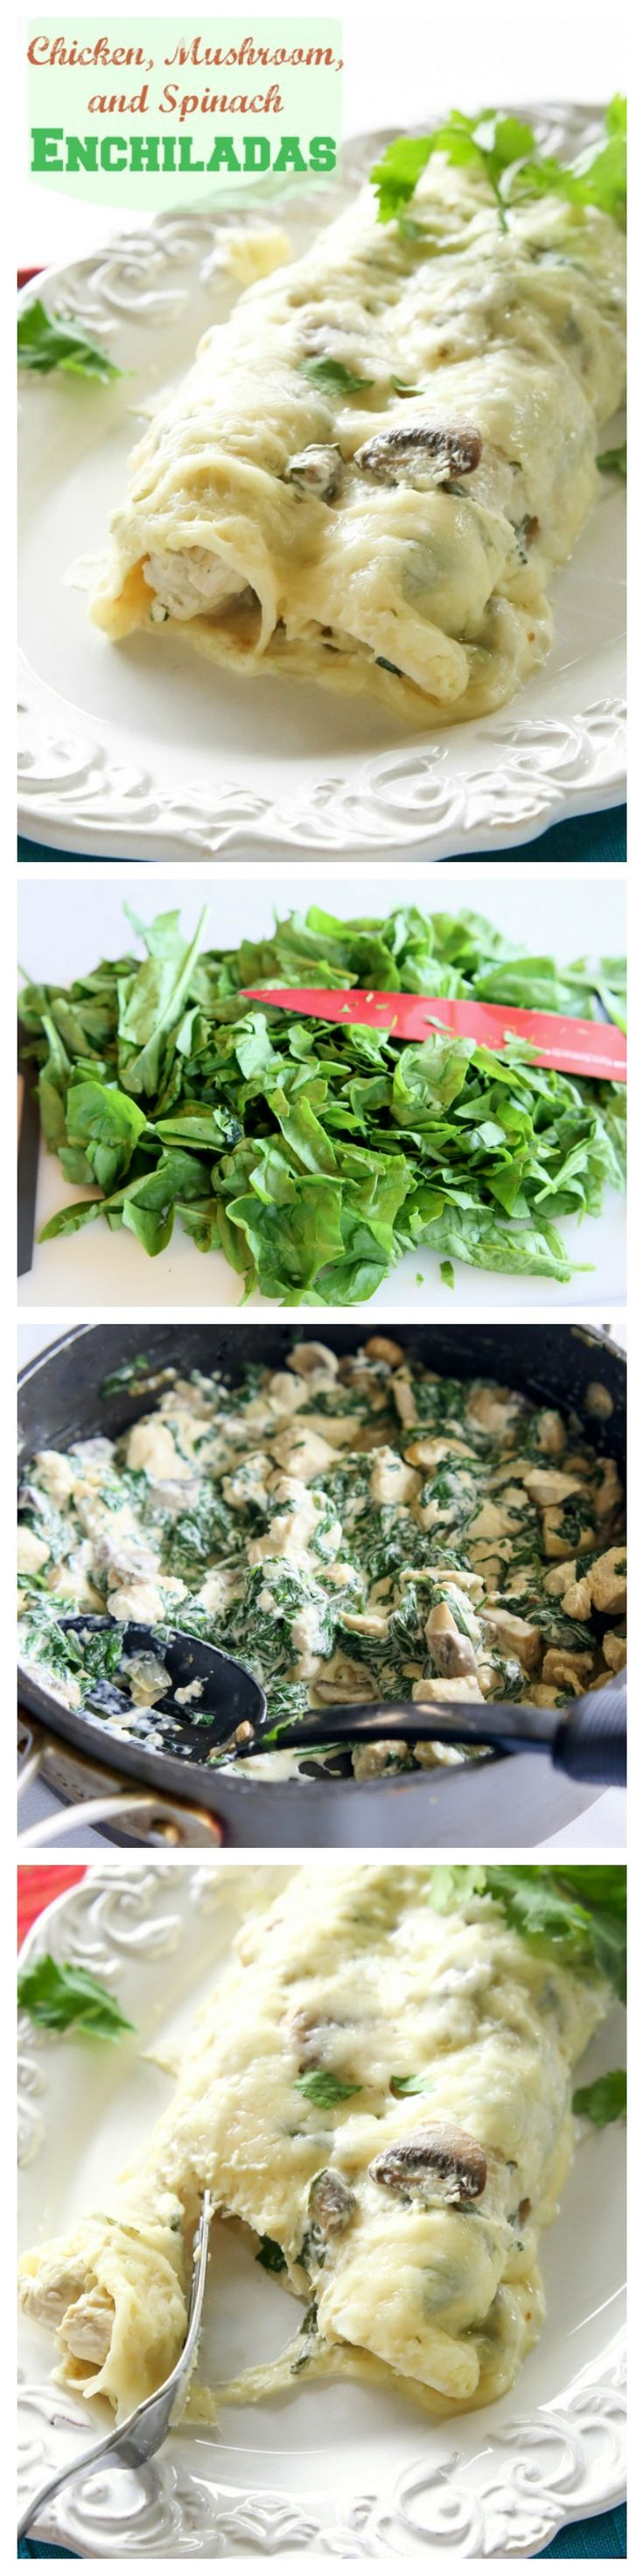 These Chicken, Spinach, and Mushroom Enchiladas are creamy enchiladas topped with a cilantro sour cream sauce. This dish is company worthy! http://the-girl-who-ate-everything.com